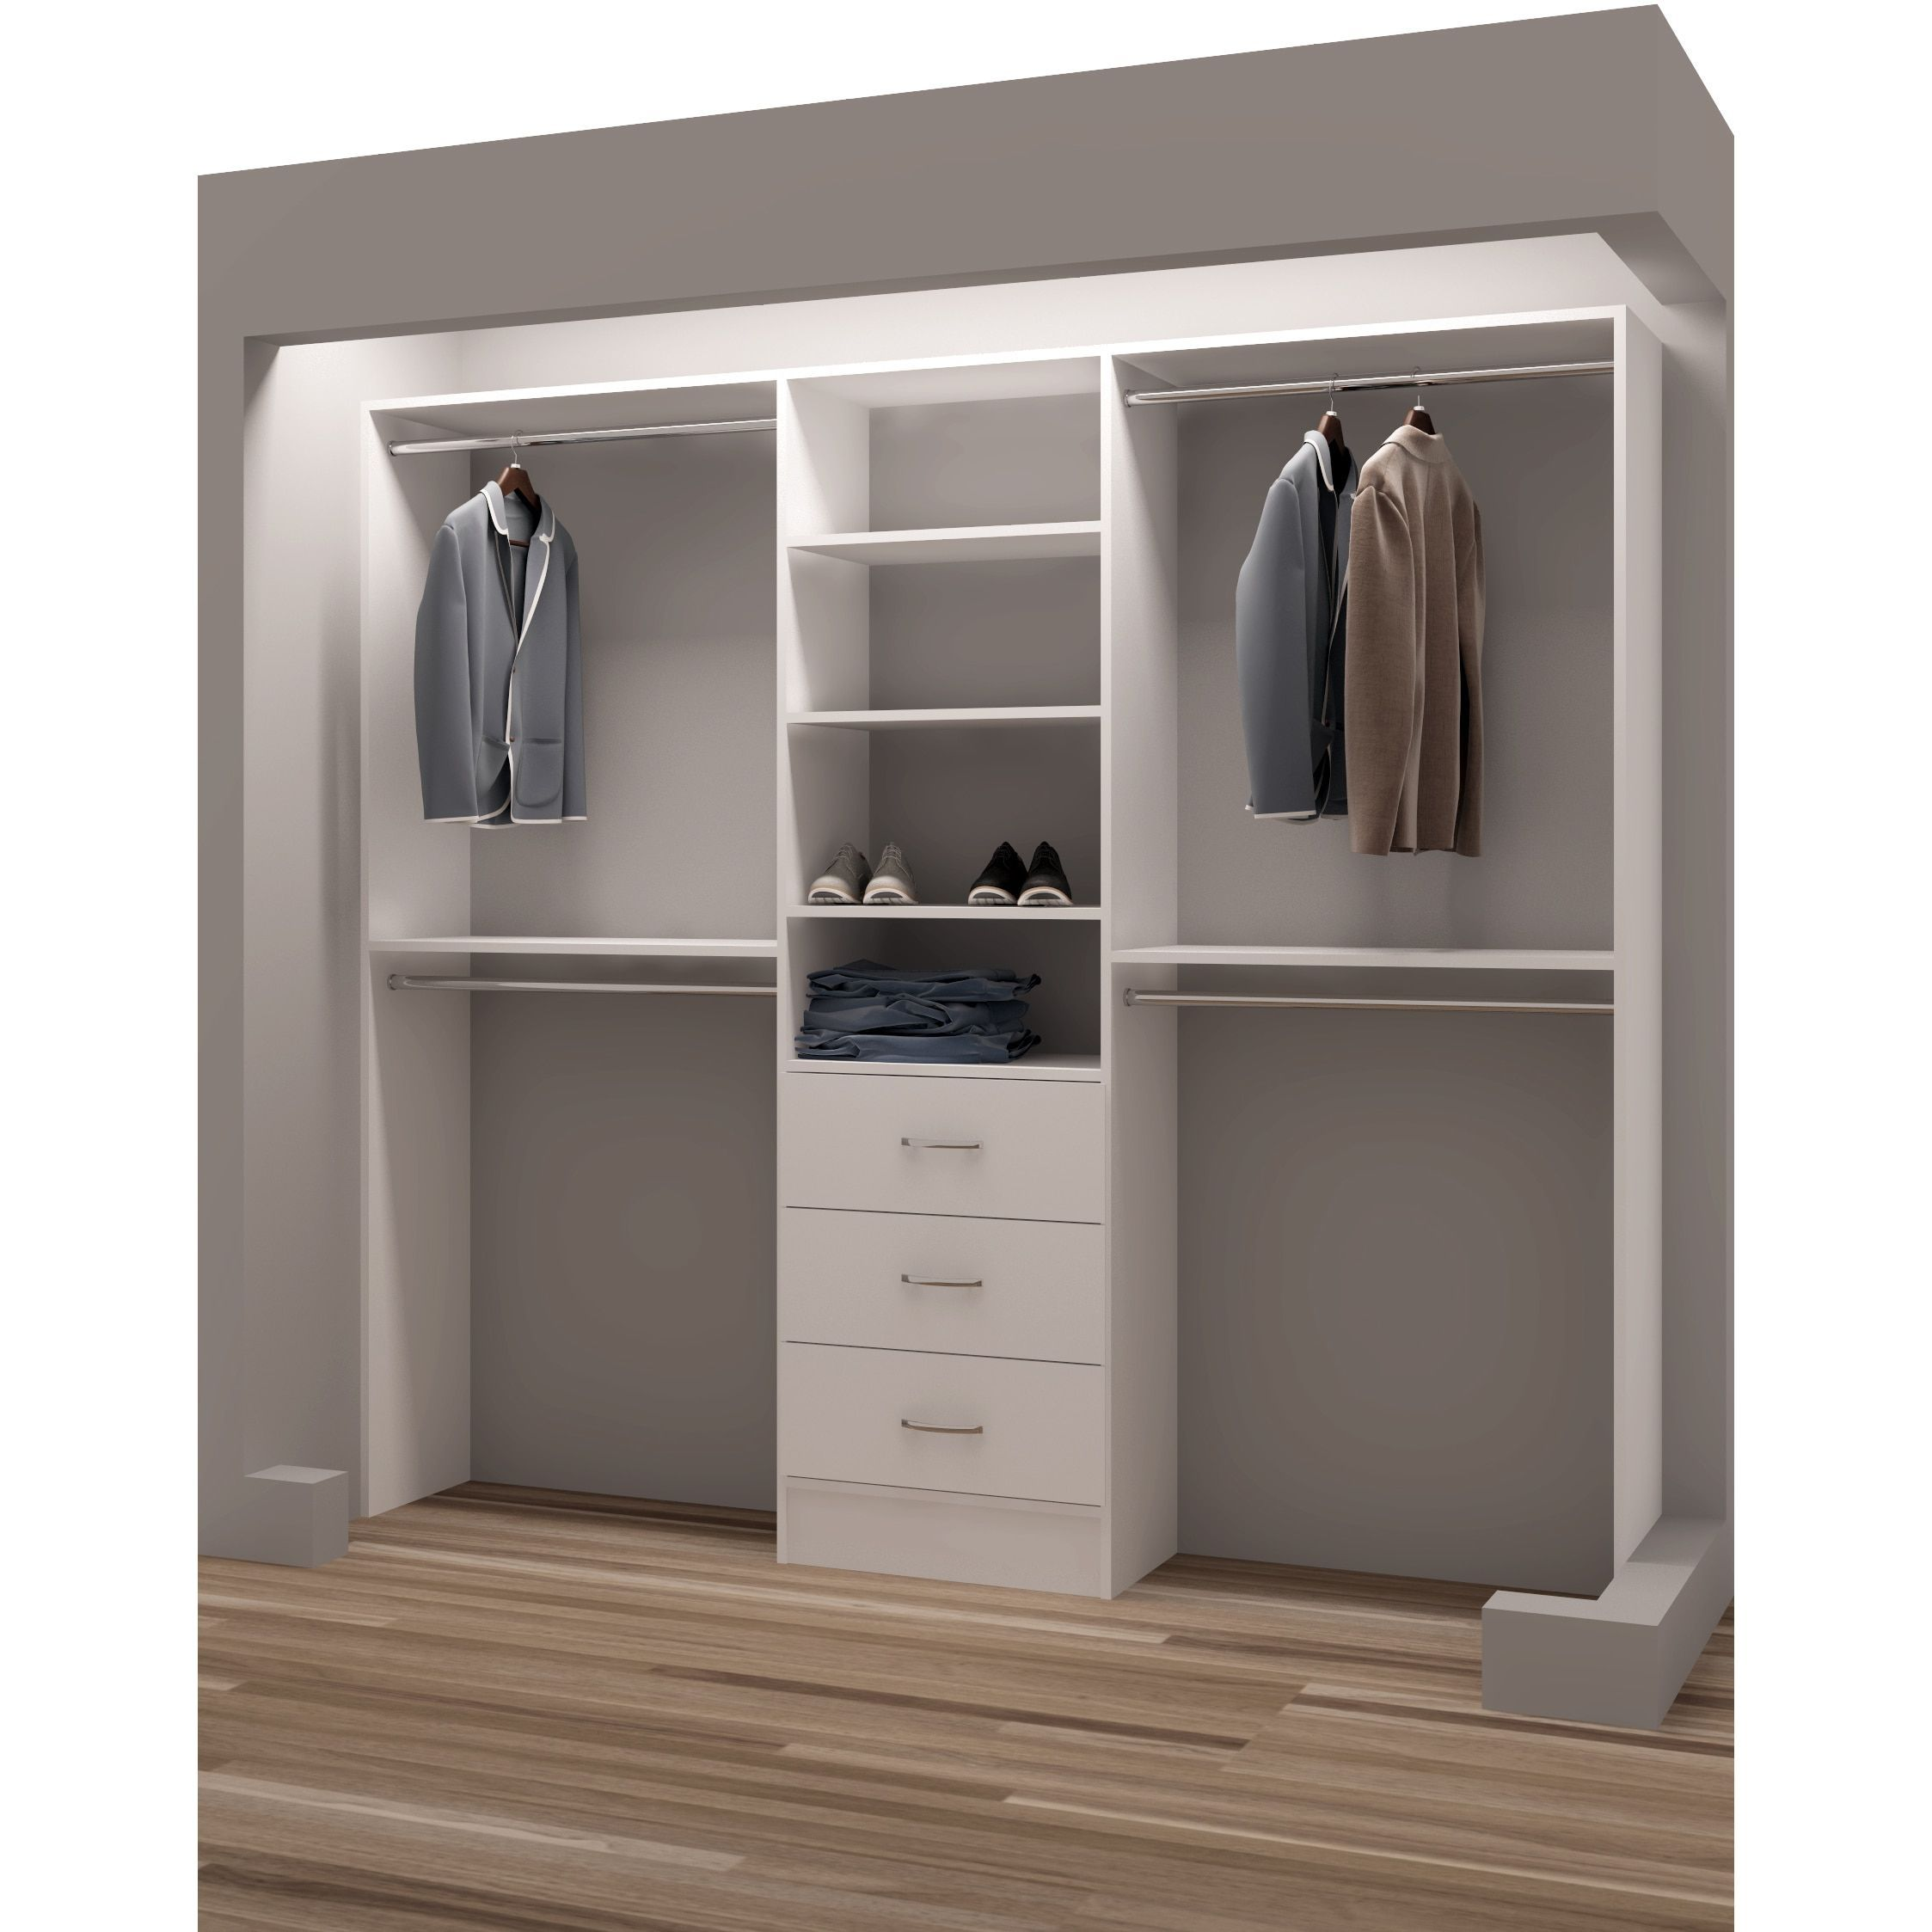 Organize Shoes, Clothes, And Accessories And Make The Most Of Your Closet  Space With